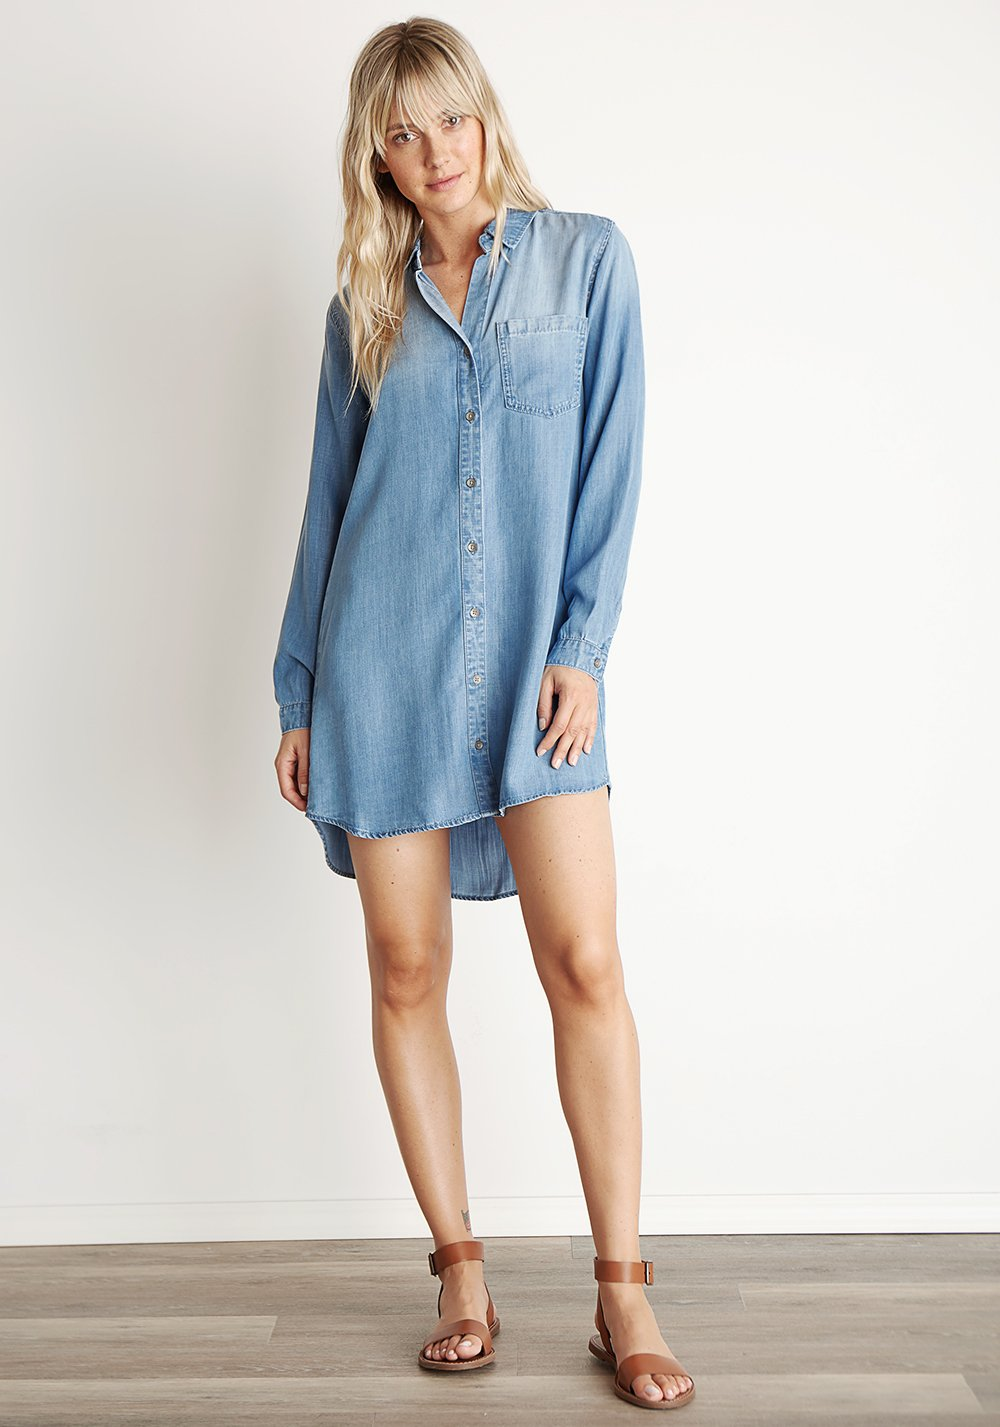 Bella Dahl Pocket Shirt Dress